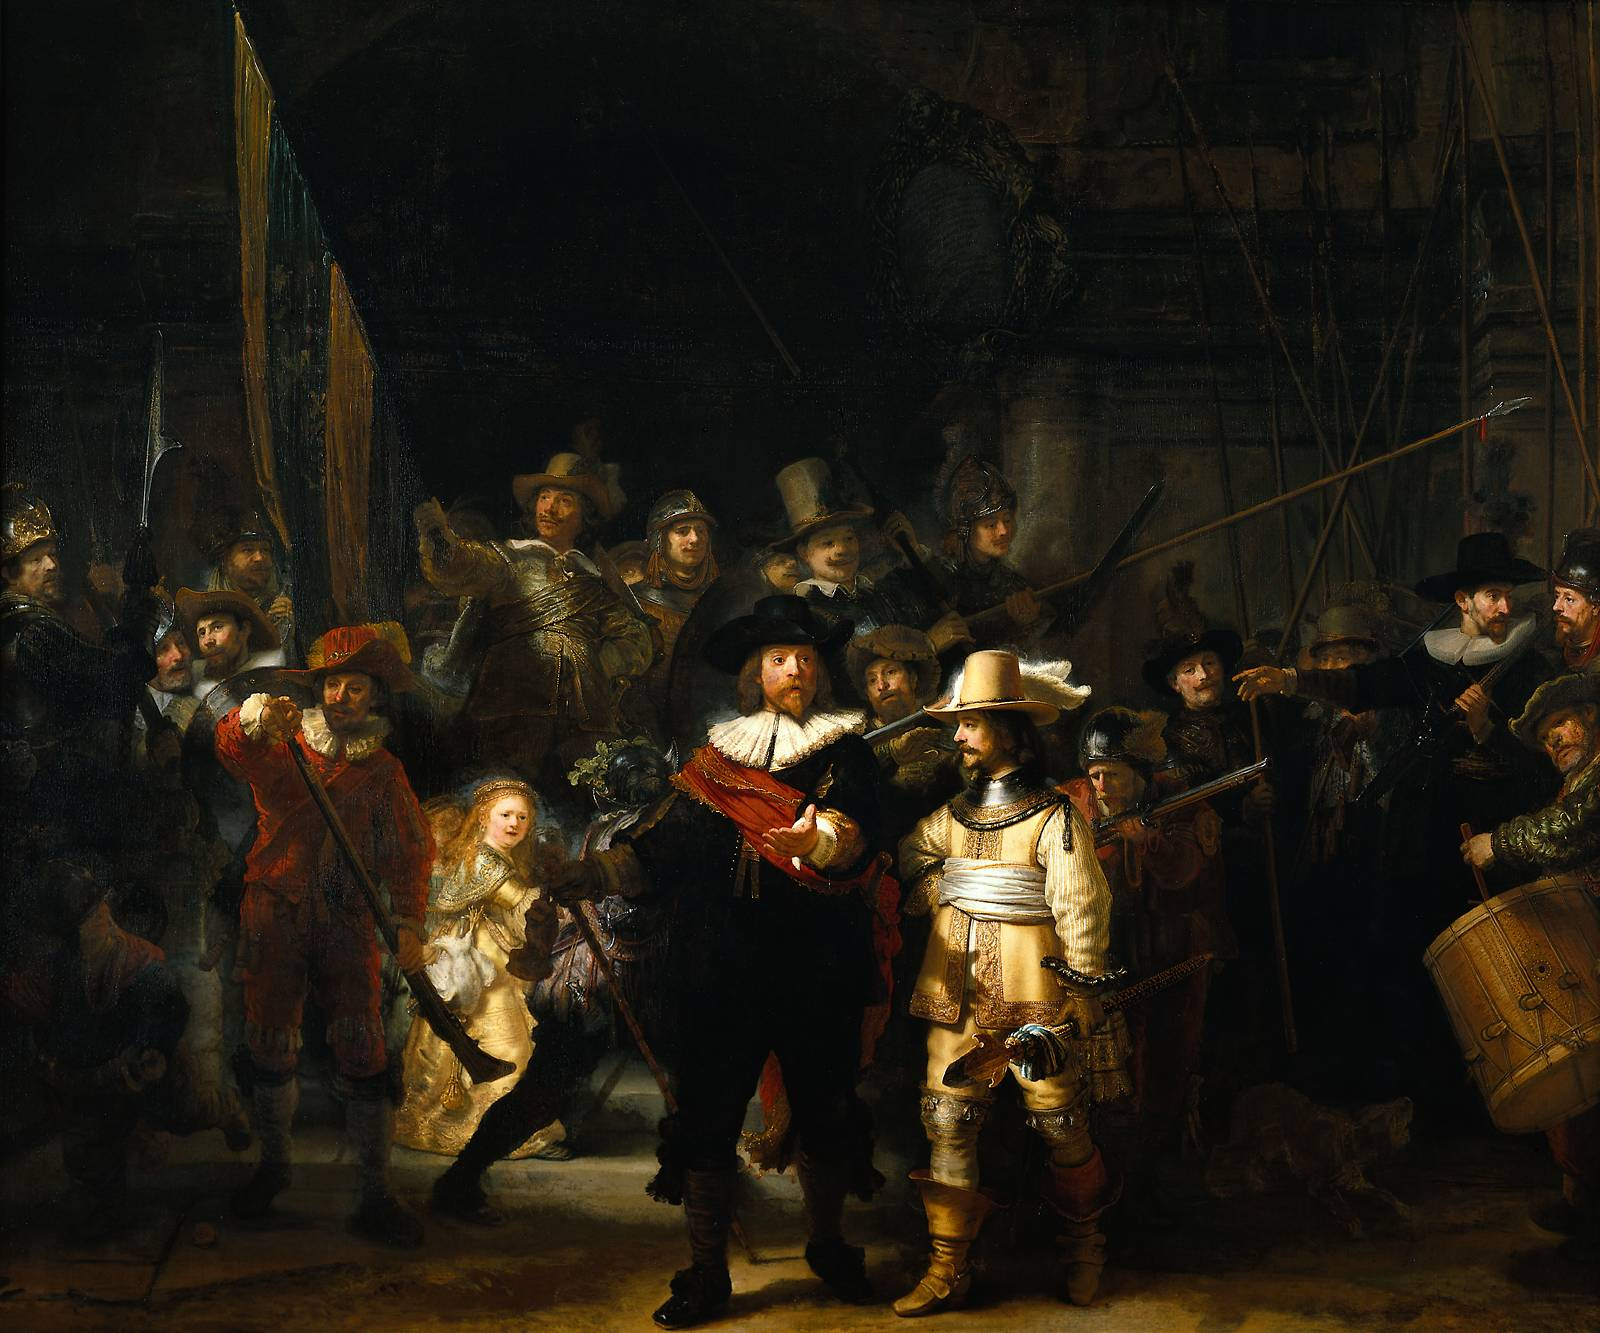 Rembrandt, The Night Watch, 1642